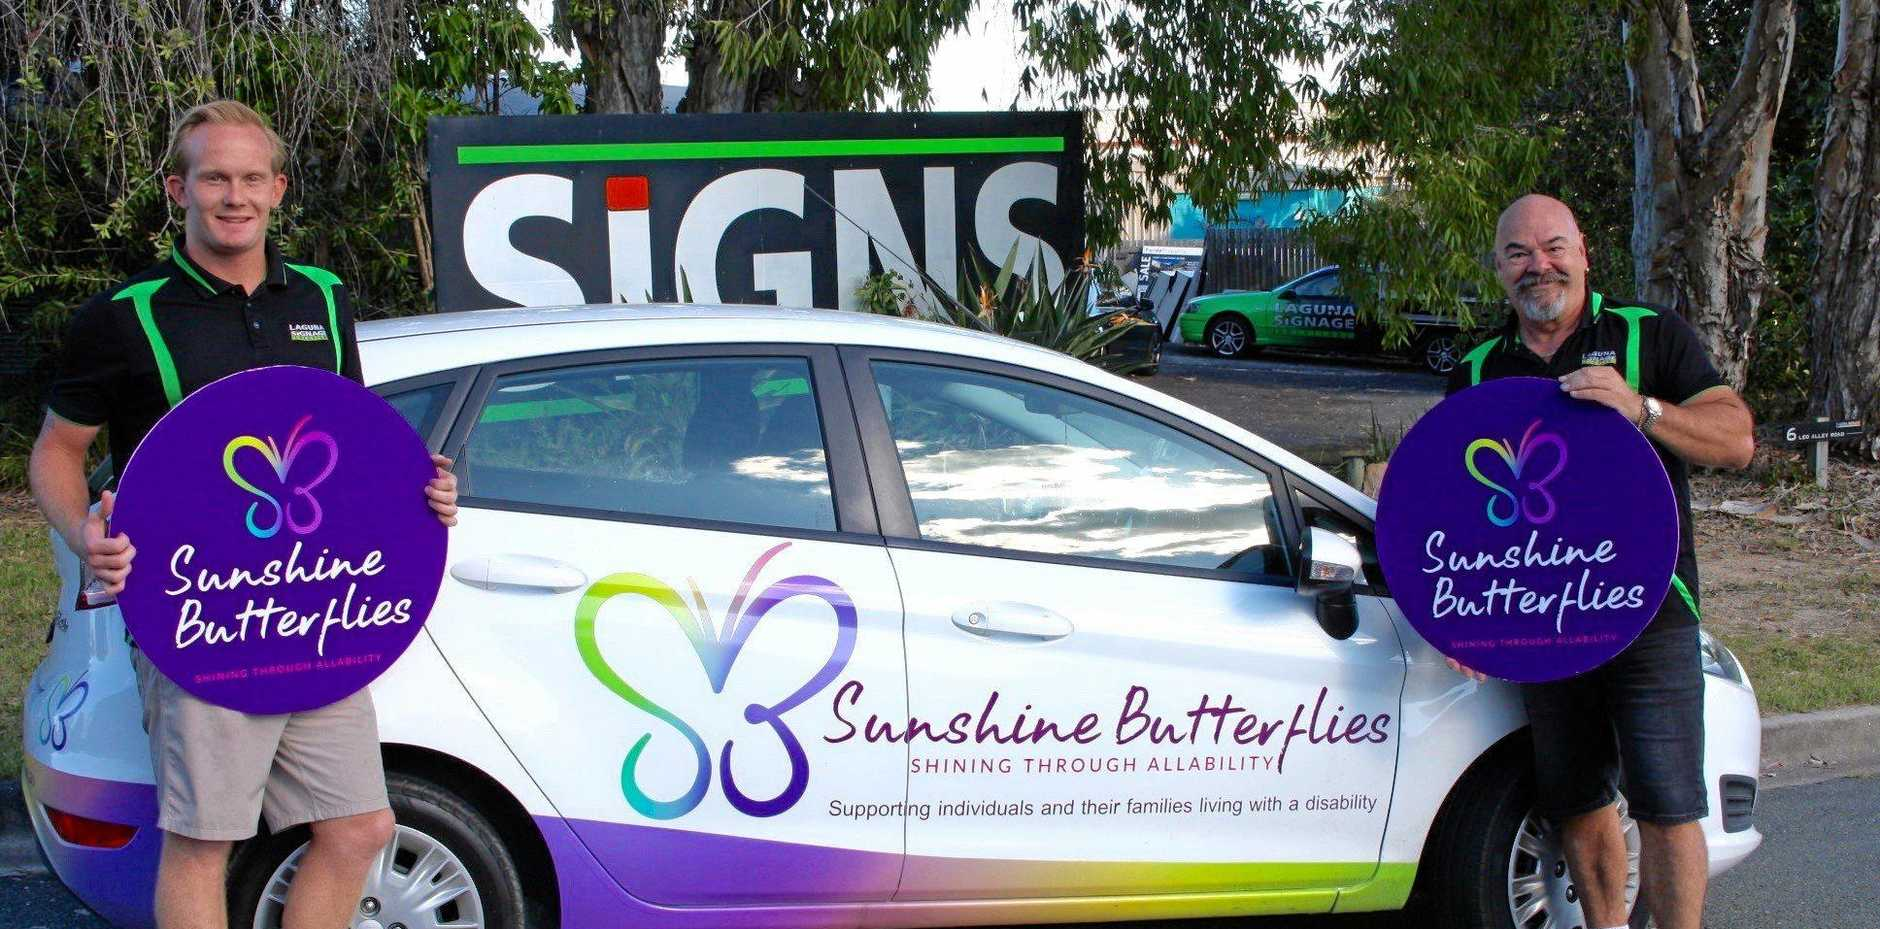 GOOD SIGN: Laguna Signage Solutions has given Sunshine Butterflies a three-year sponsorship.